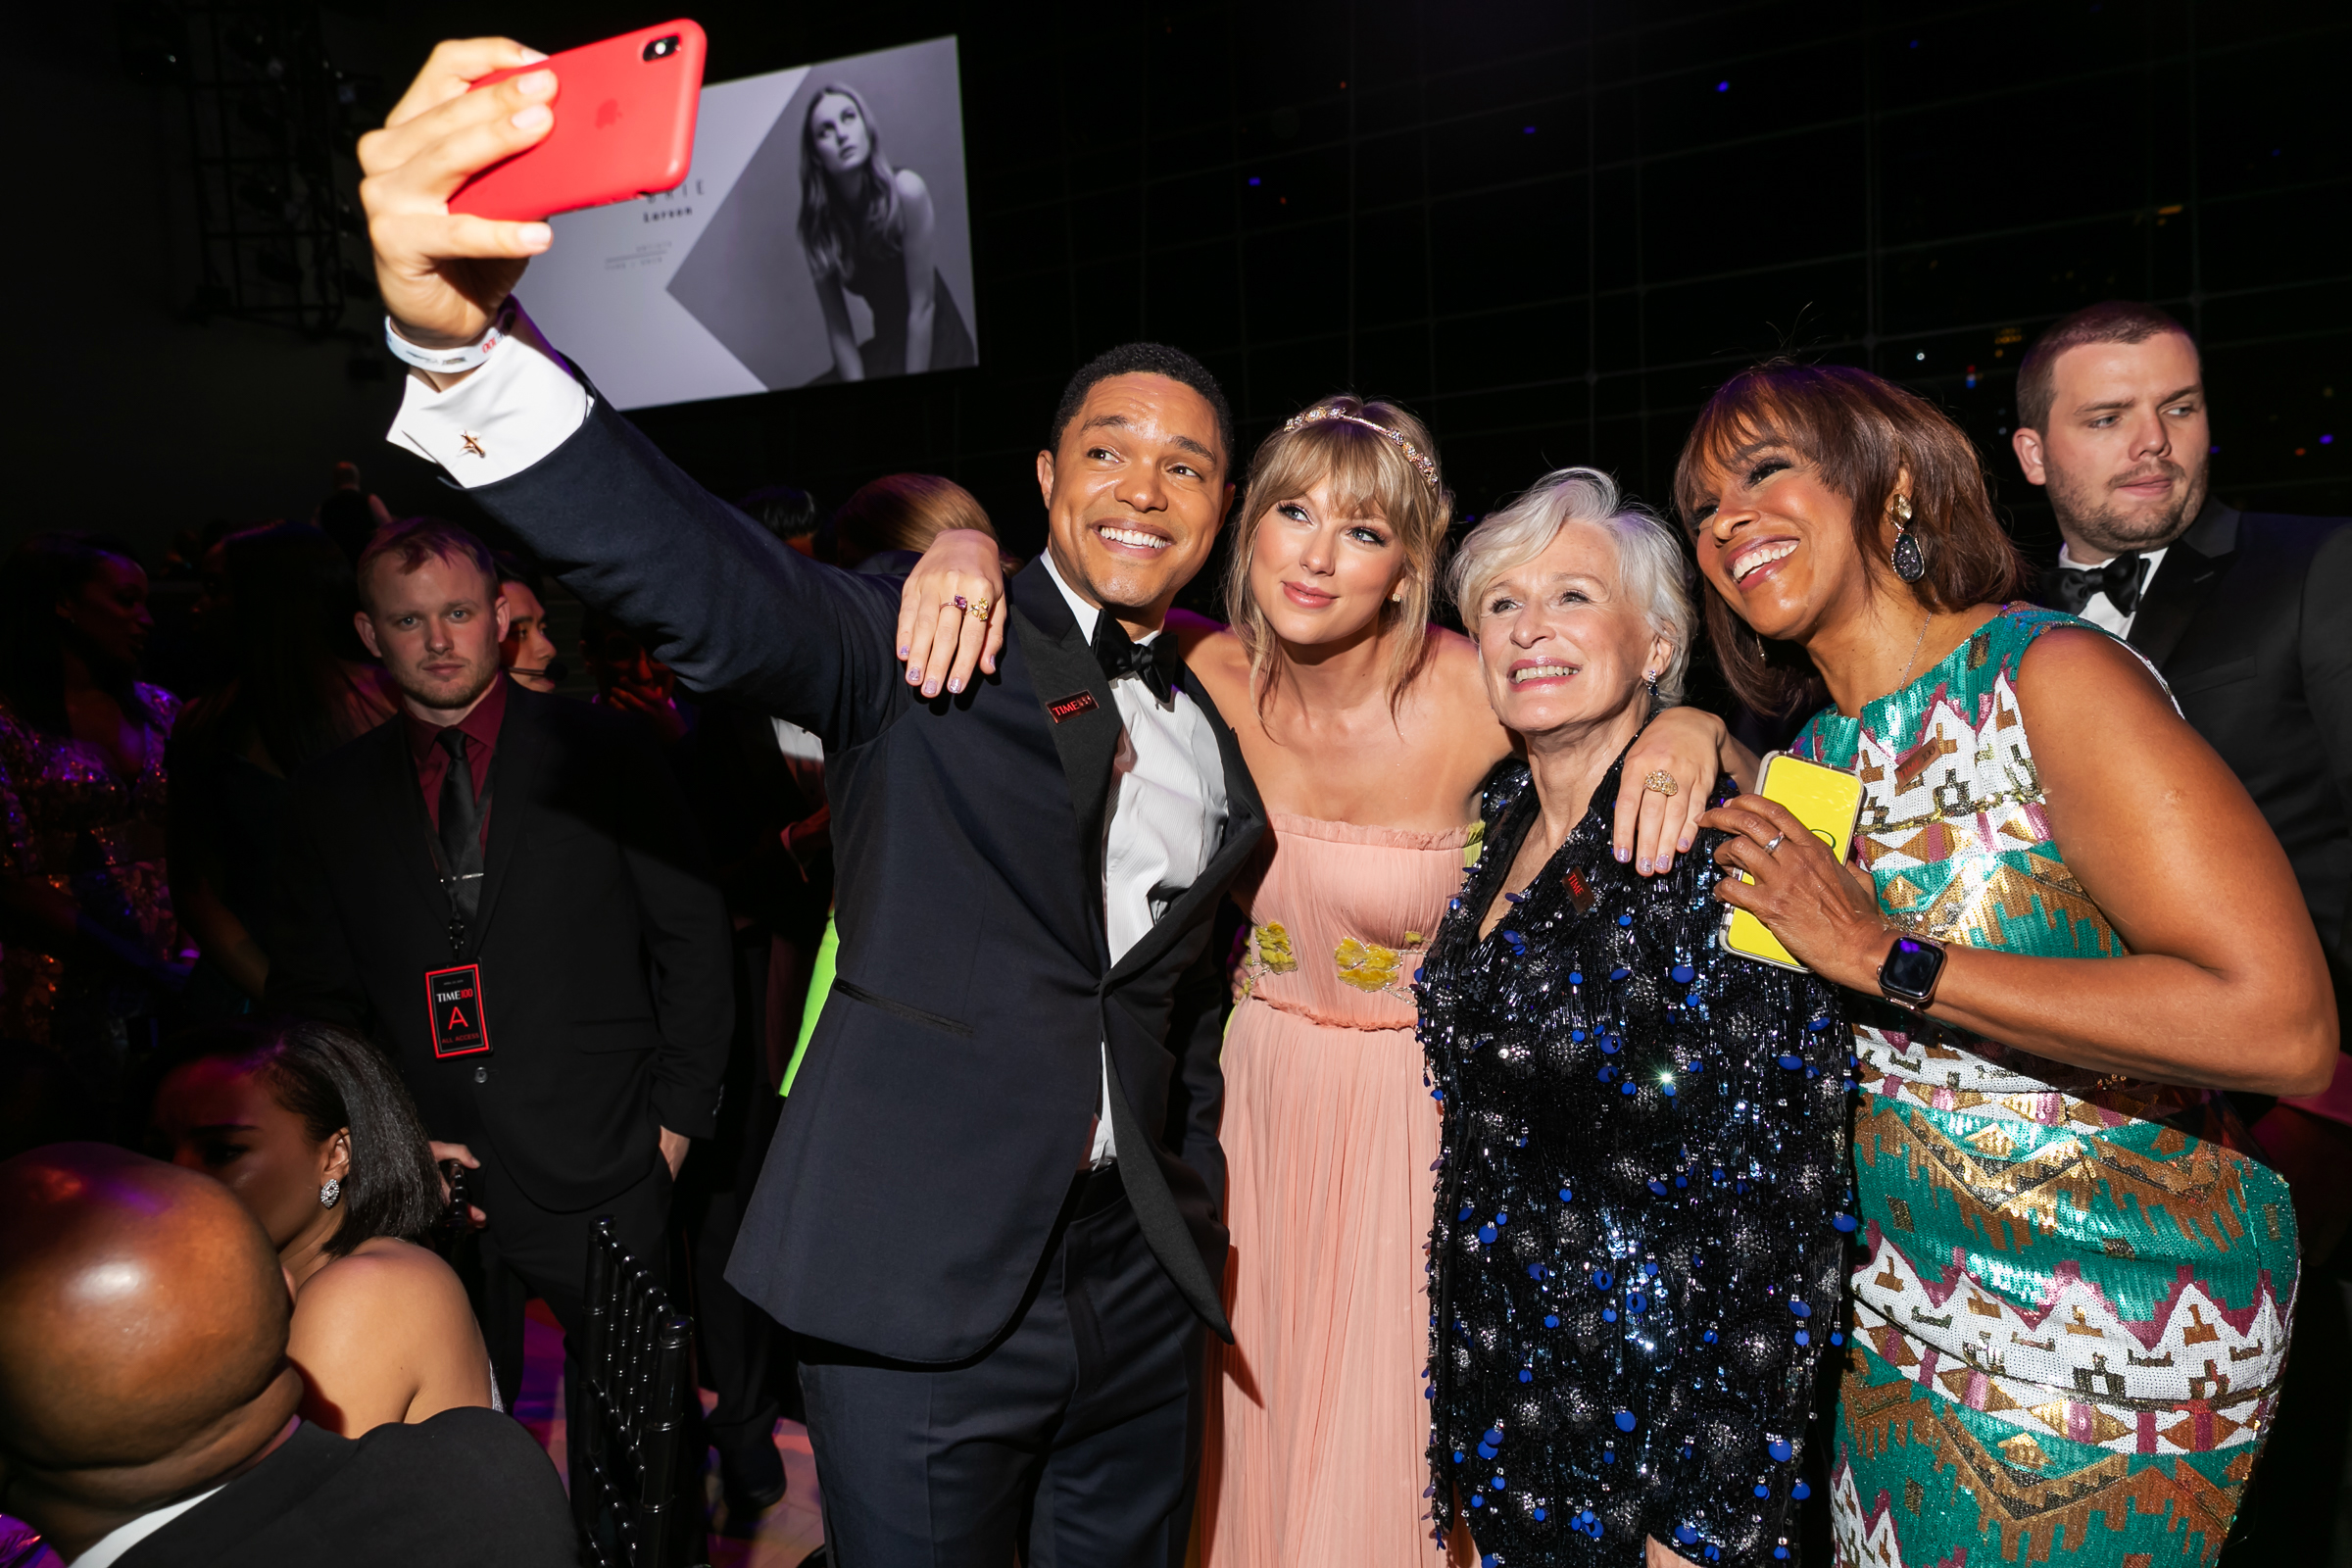 Trevor Noah, Taylor Swift, Glenn Close and Gayle King at the Time 100 Gala at Jazz at Lincoln Center in New York City on April 23, 2019.